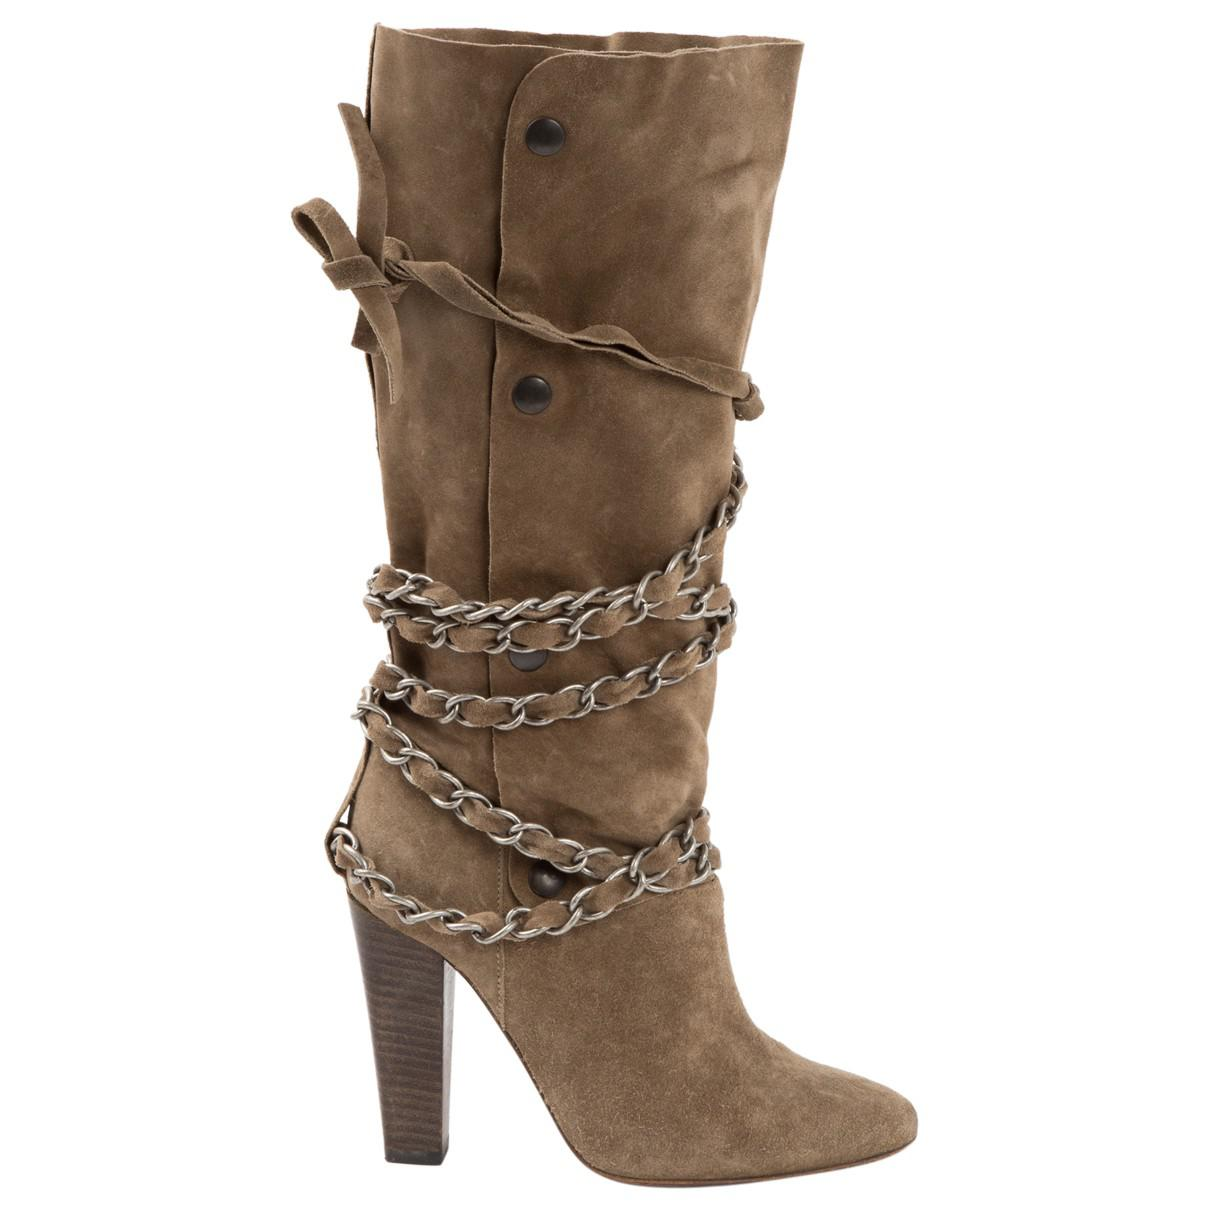 Pre-owned - BOOTS Isabel Marant Y48qN4